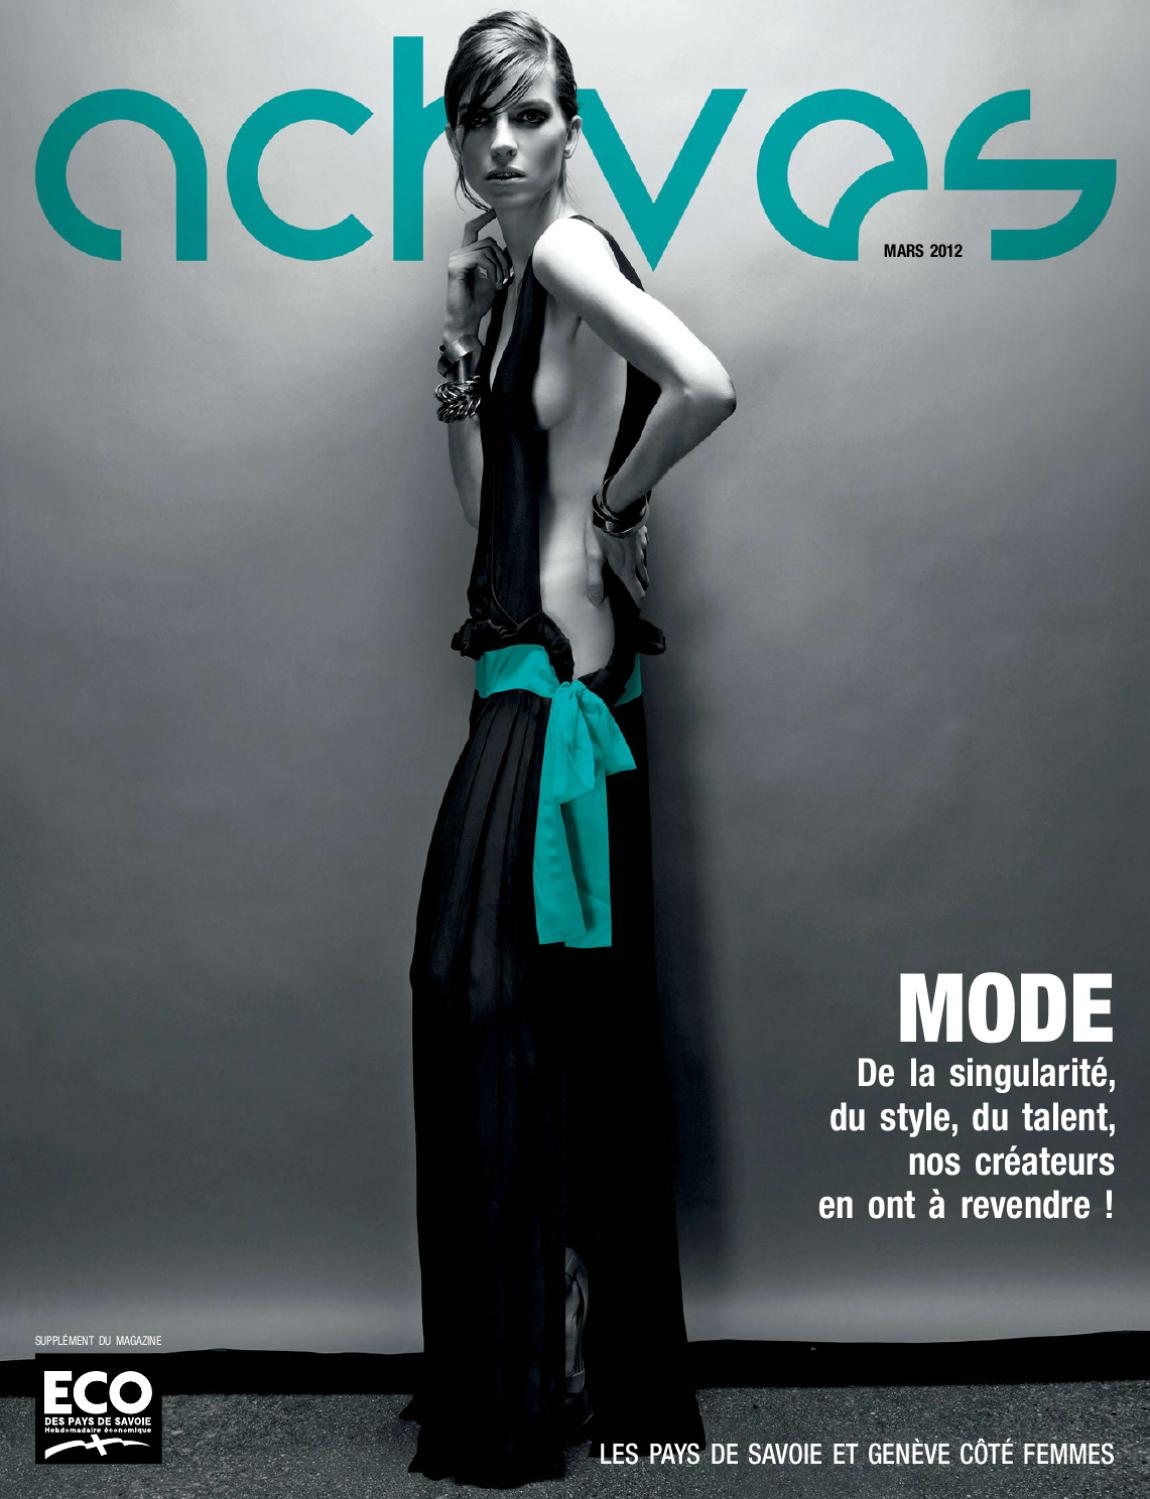 Actives magazine - Mars 2012 by Sopreda 2 - issuu 9f0a29dce85